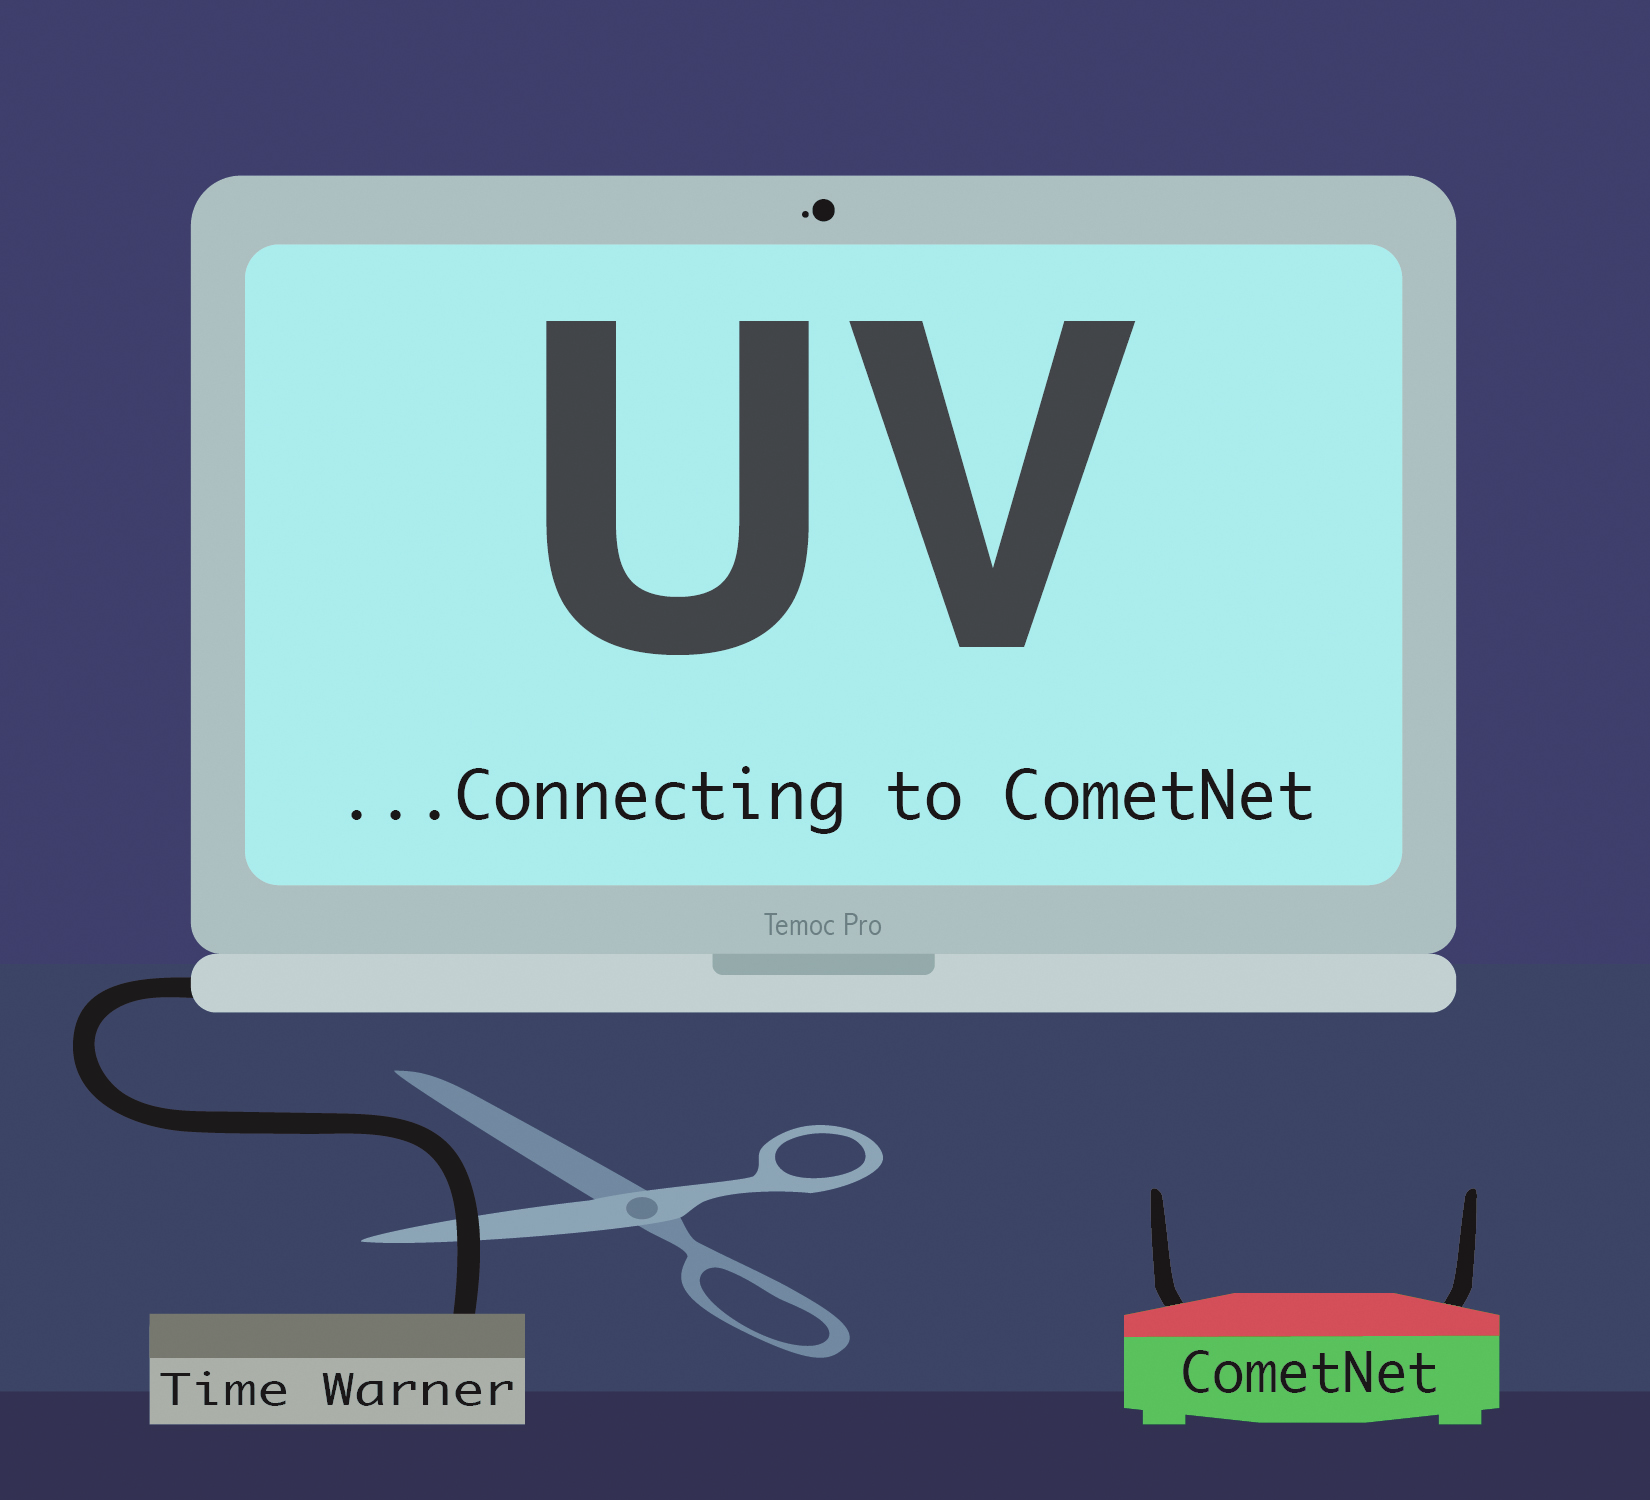 Internet Speed To Rise In Uv The Mercury